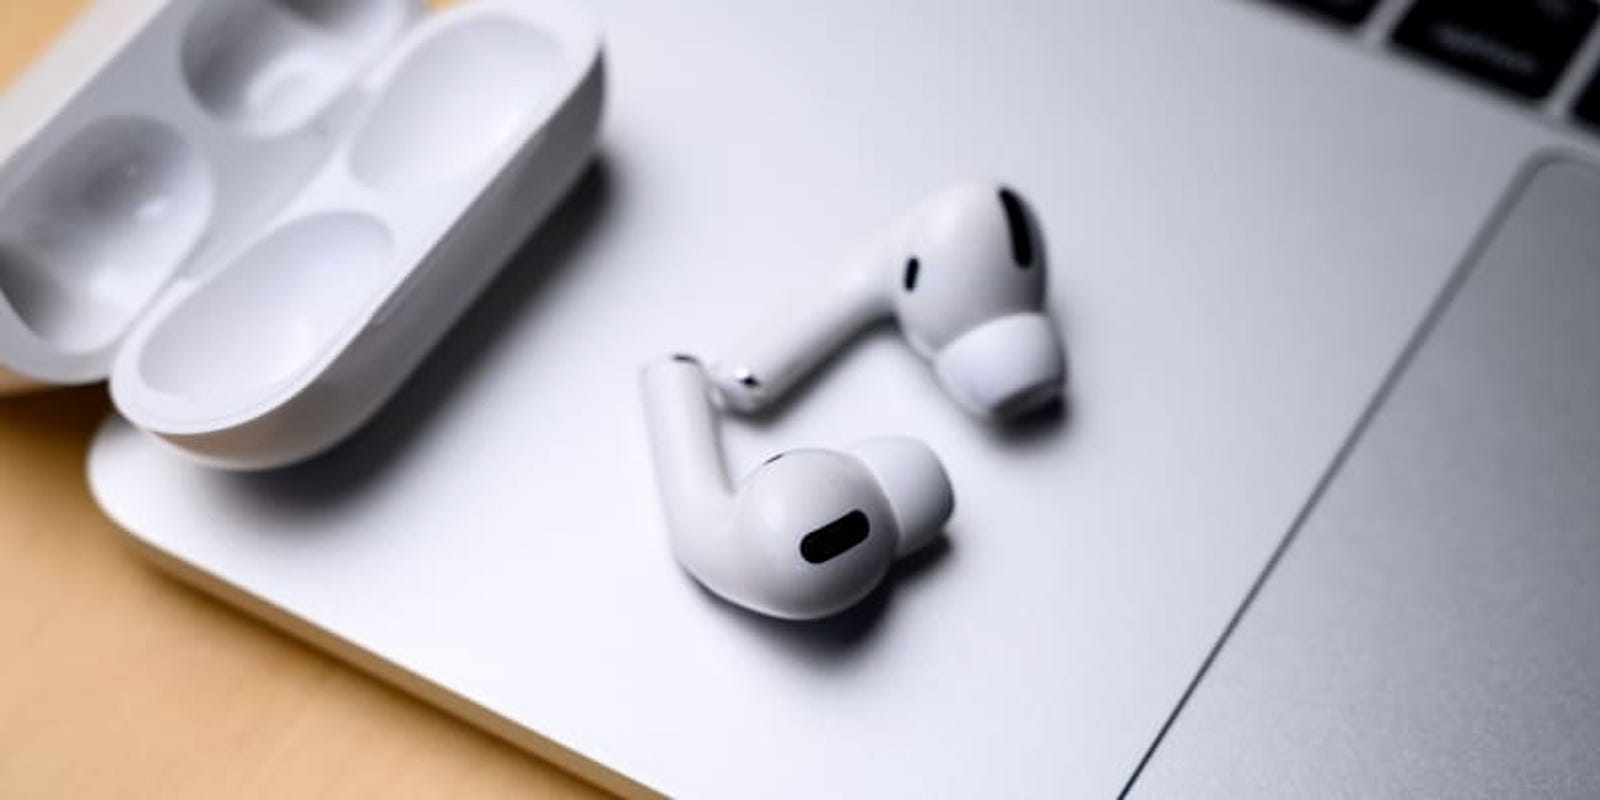 Apple Airpods Pro Sale Get The Best Wireless Earbuds At A New Low